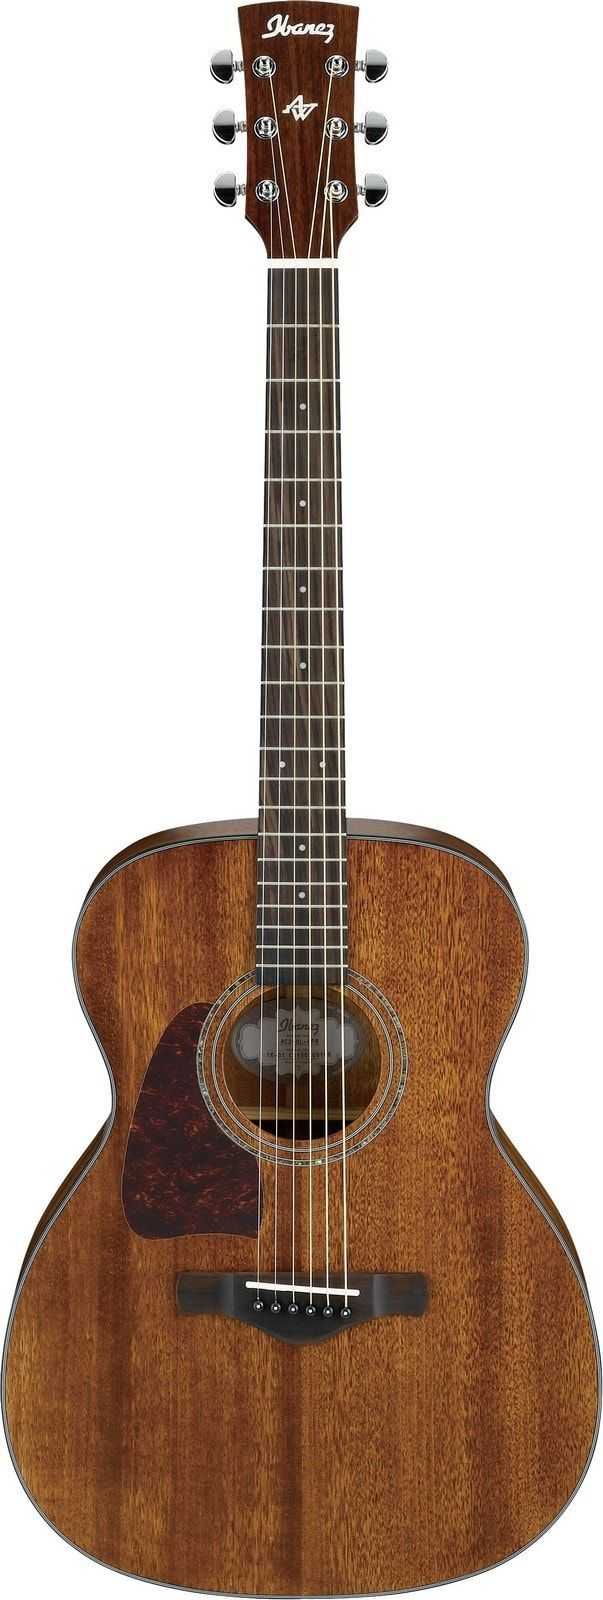 Ibanez AC240L Artwood Series Acoustic Guitar | Left Handed